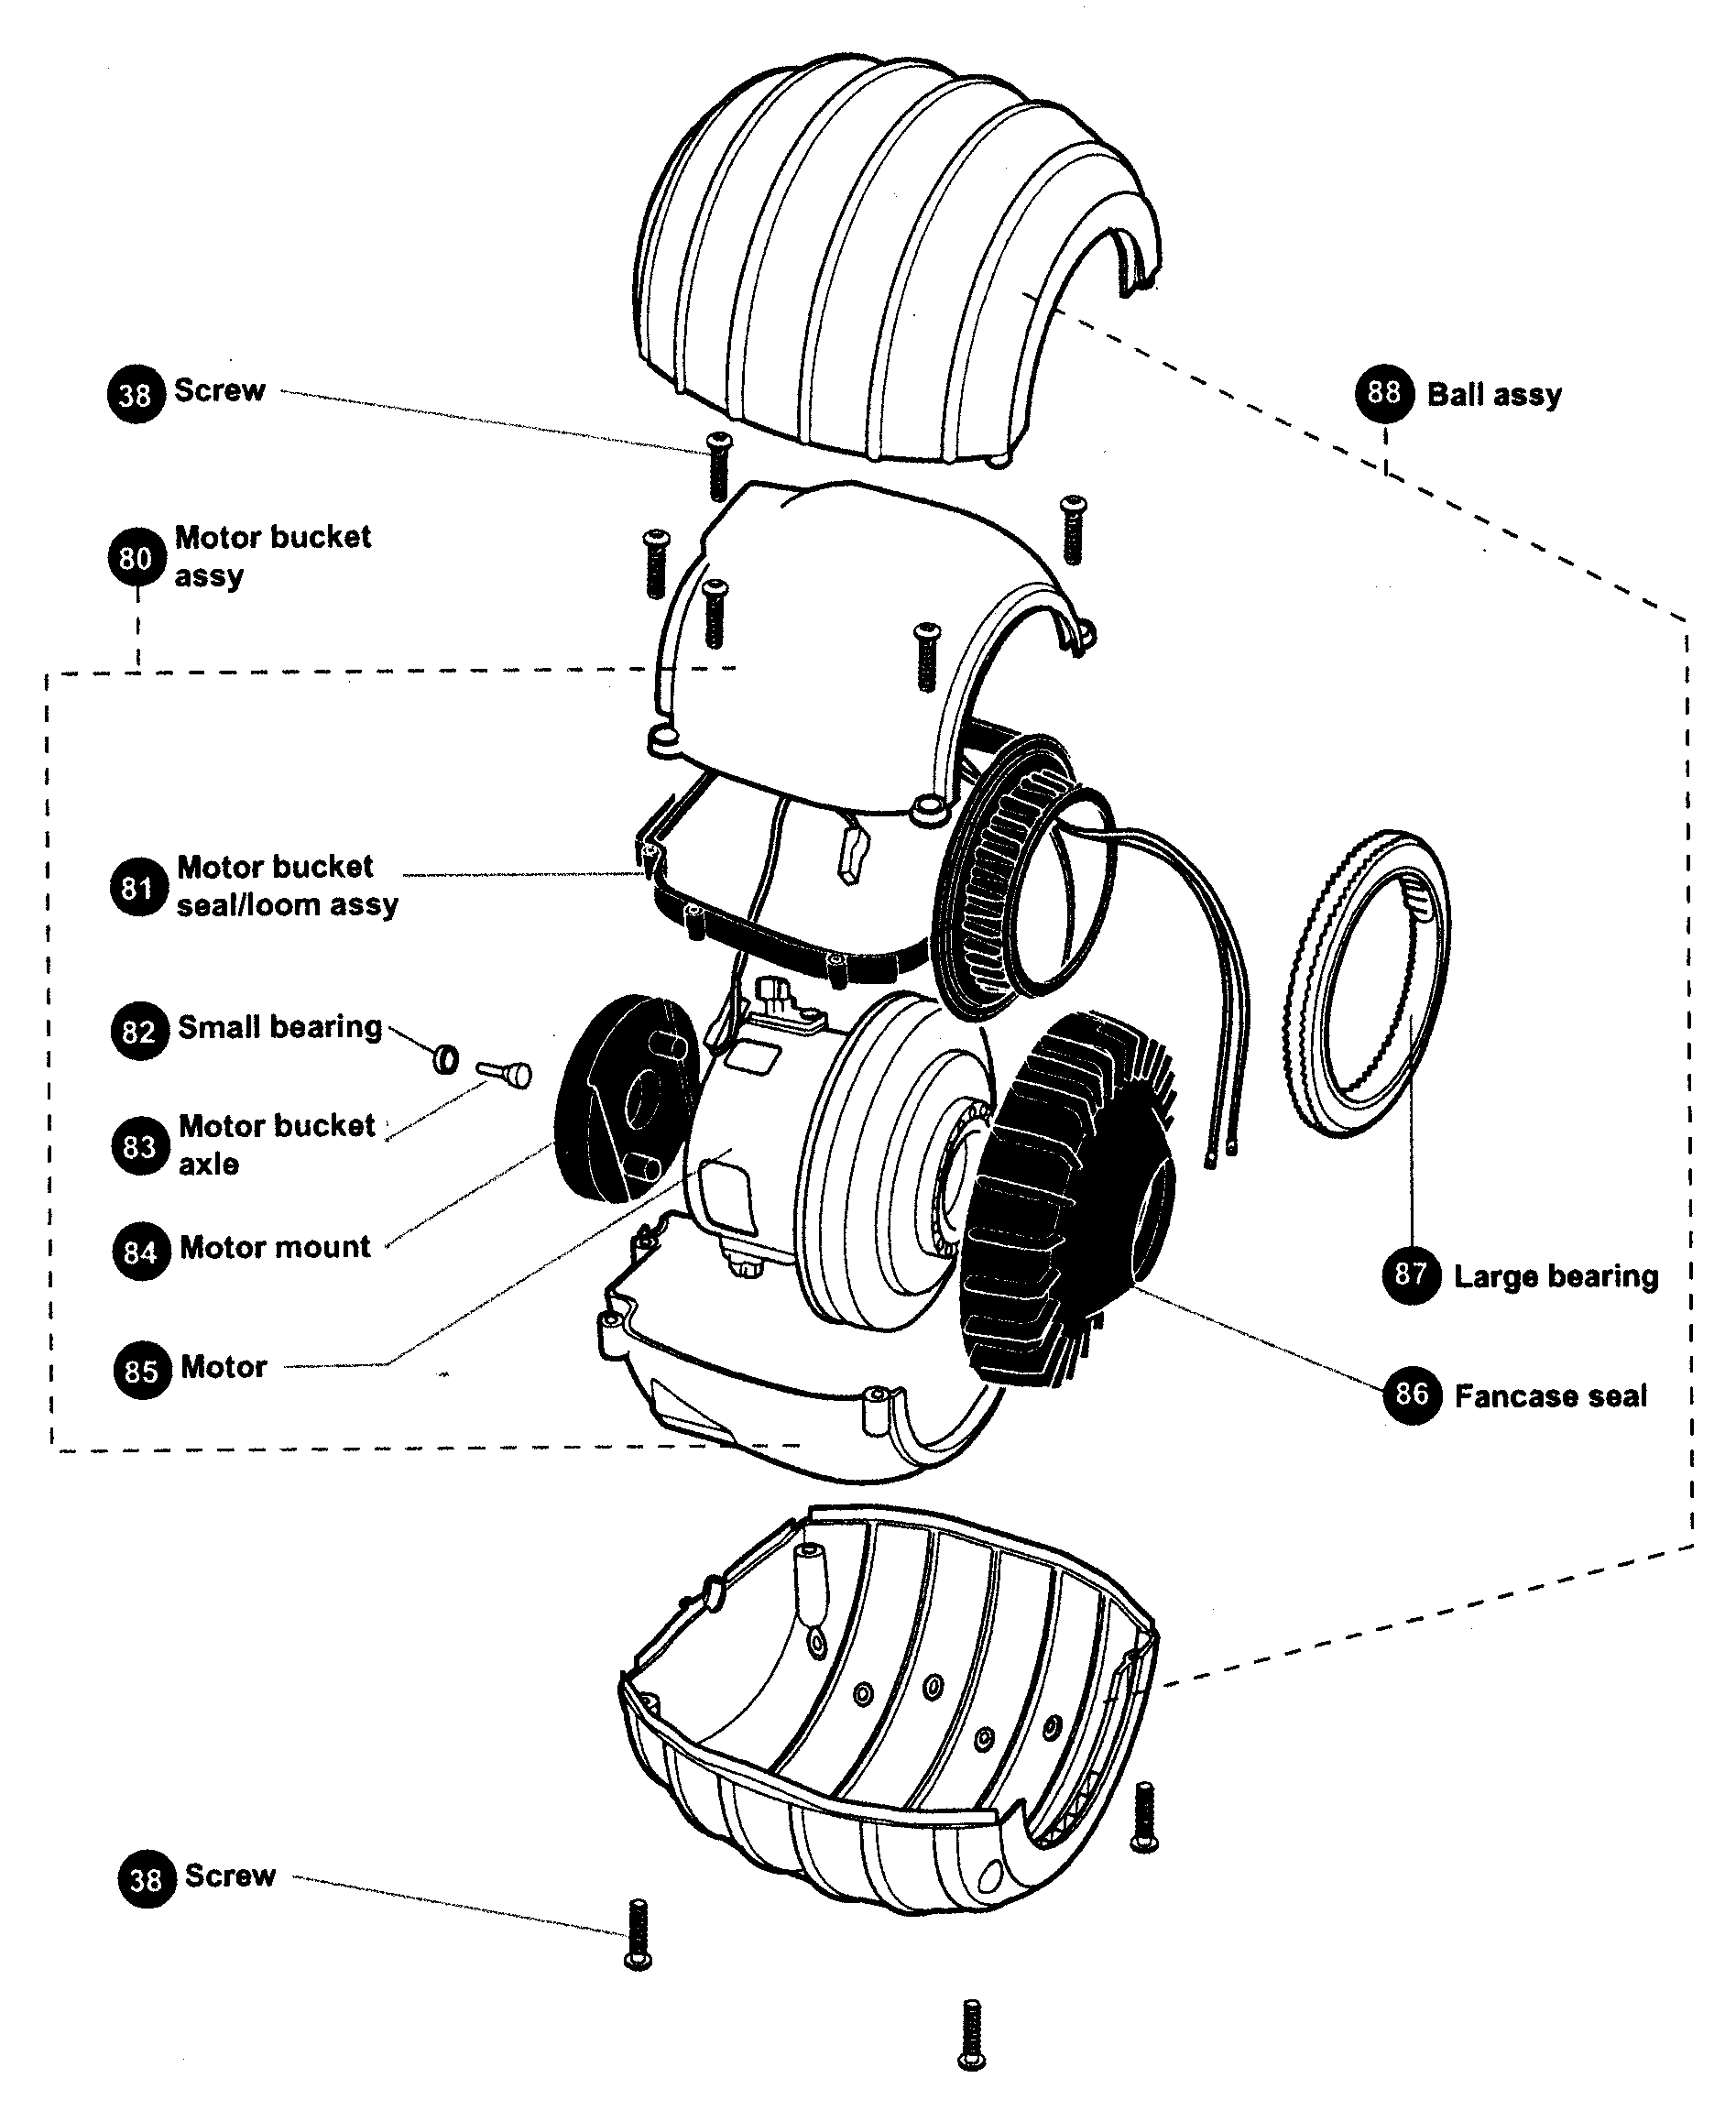 MANUAL DYSON DC07  Auto Electrical    Wiring       Diagram